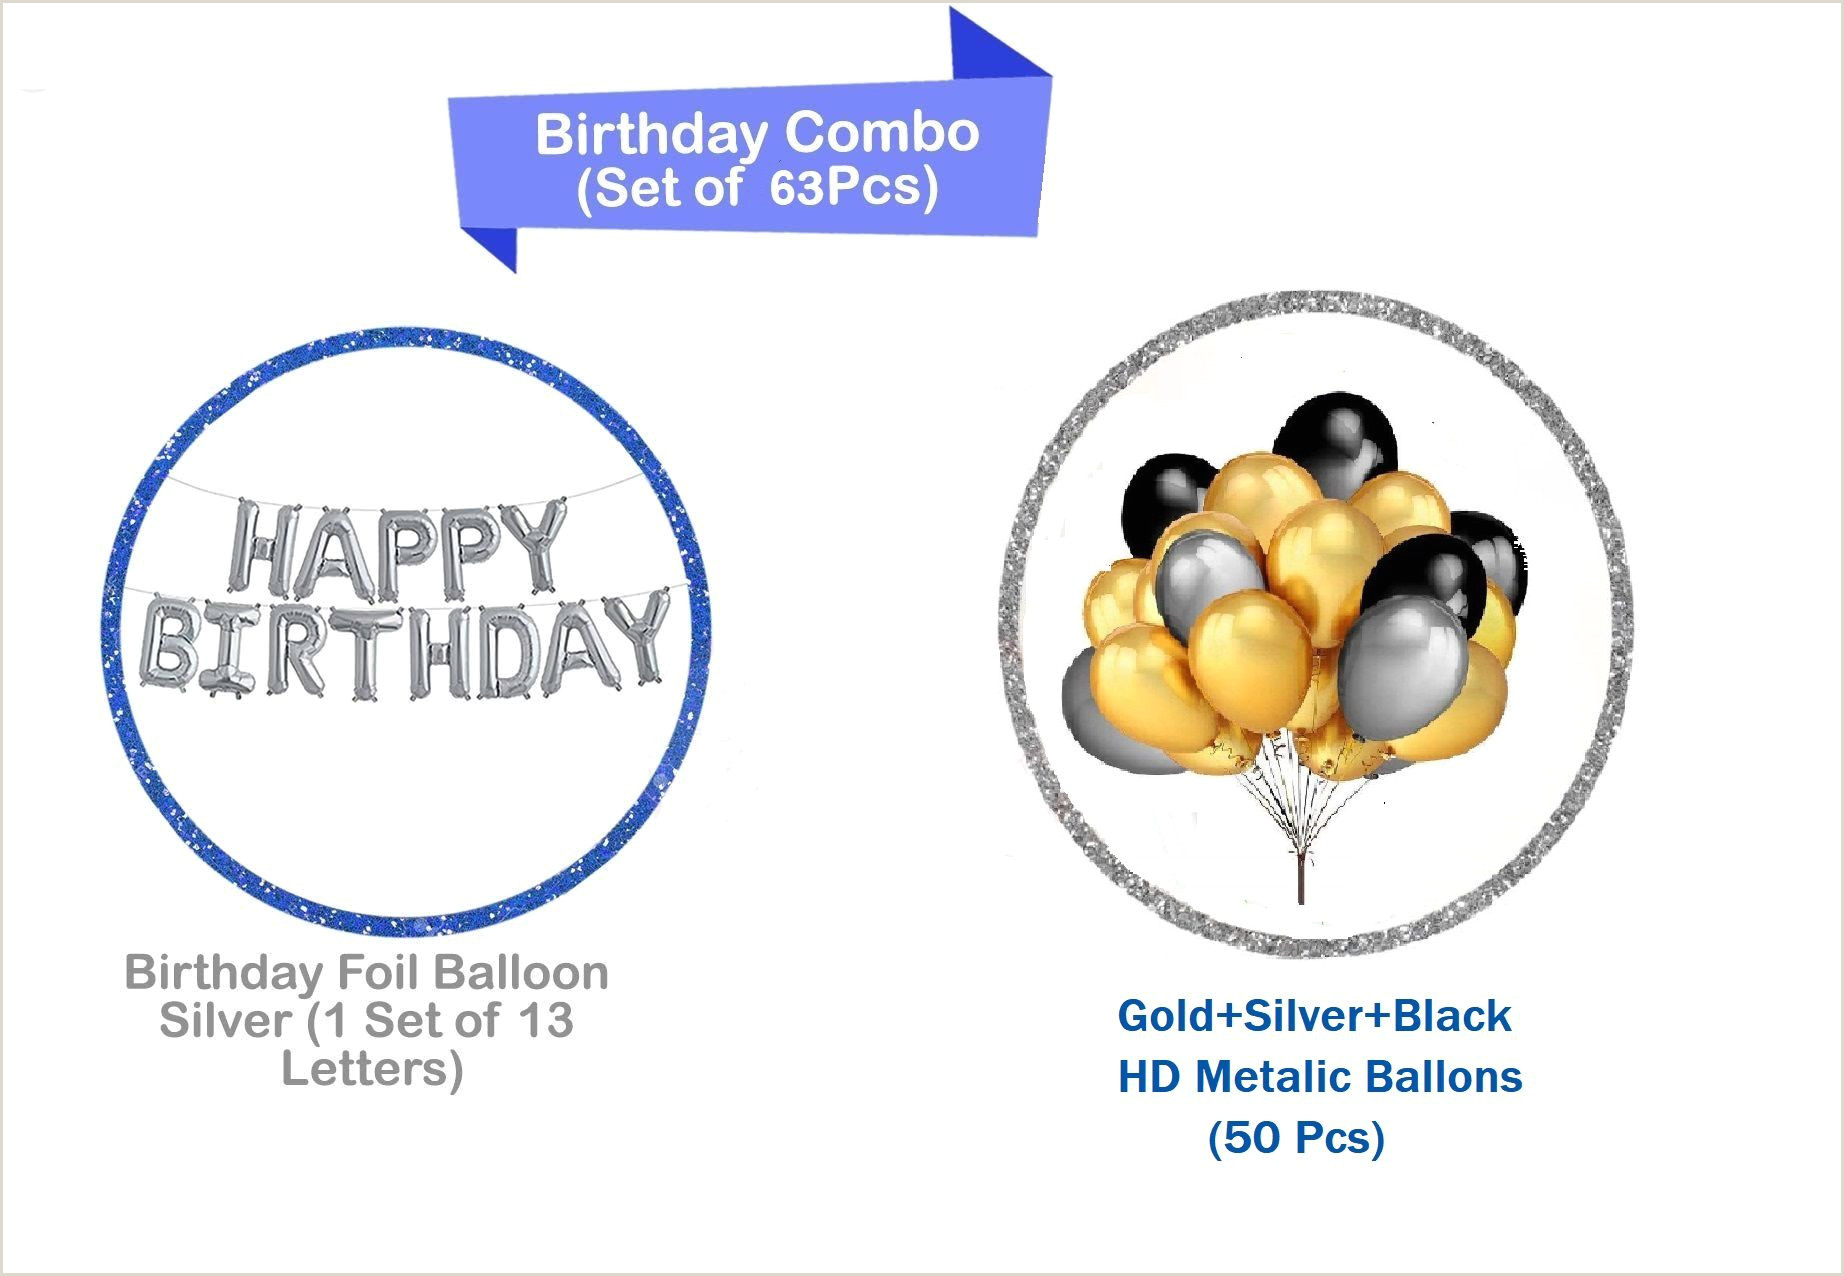 Black Business Card With Gold Lettering Happy Birthday Letter Foil Balloon Set Of Silver Pack Of 50 Hd Metallic Balloons Gold Black And Silver